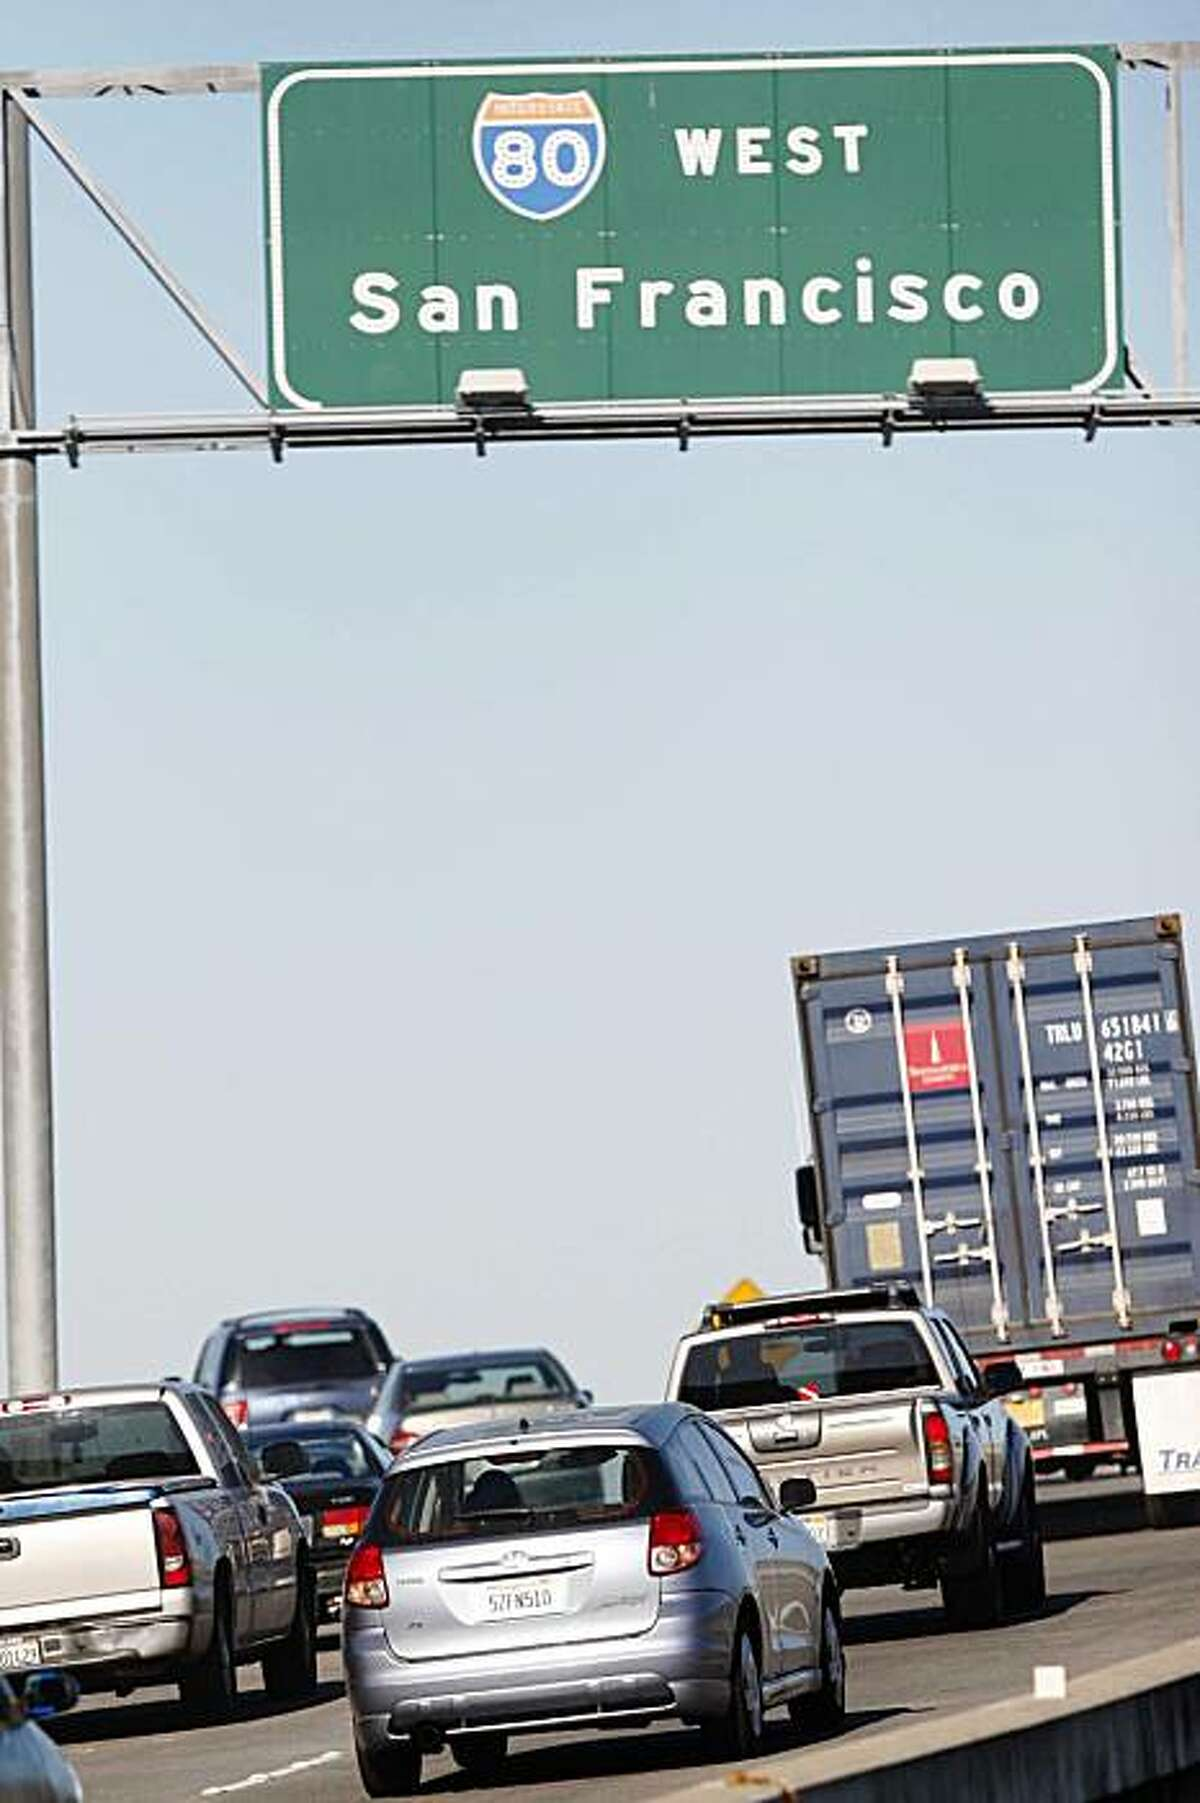 Since being closed for emergency repairs last week, commutes drive over the West Oakland approach to the Bay Bridge for the first time on Monday, Nov. 2, 2009 in Oakland, Calif.